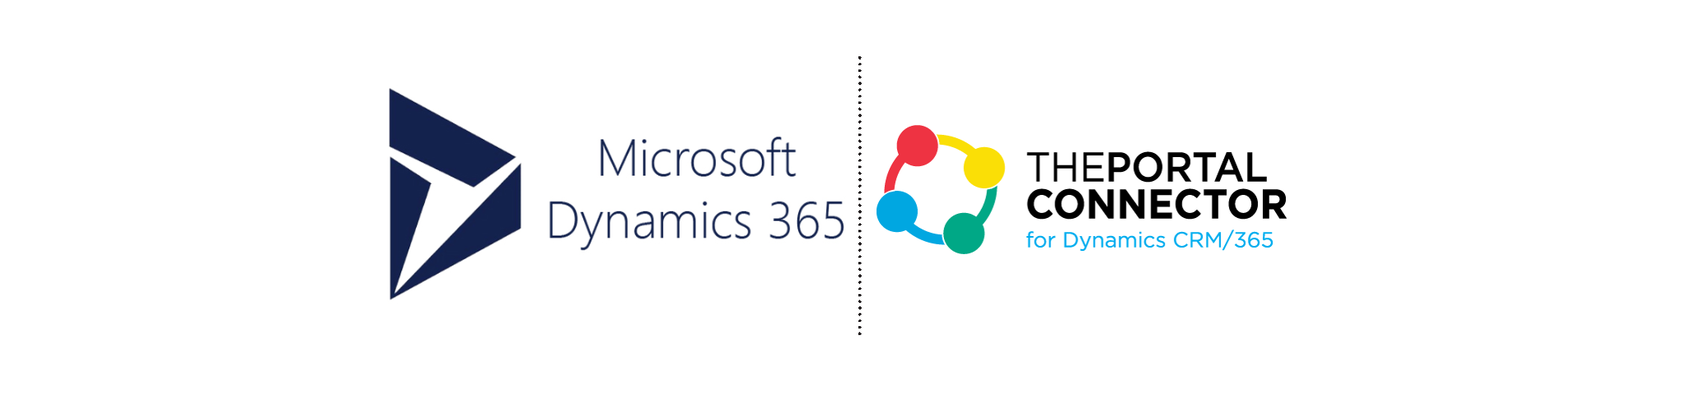 Dynamics 365 and The Portal Connector